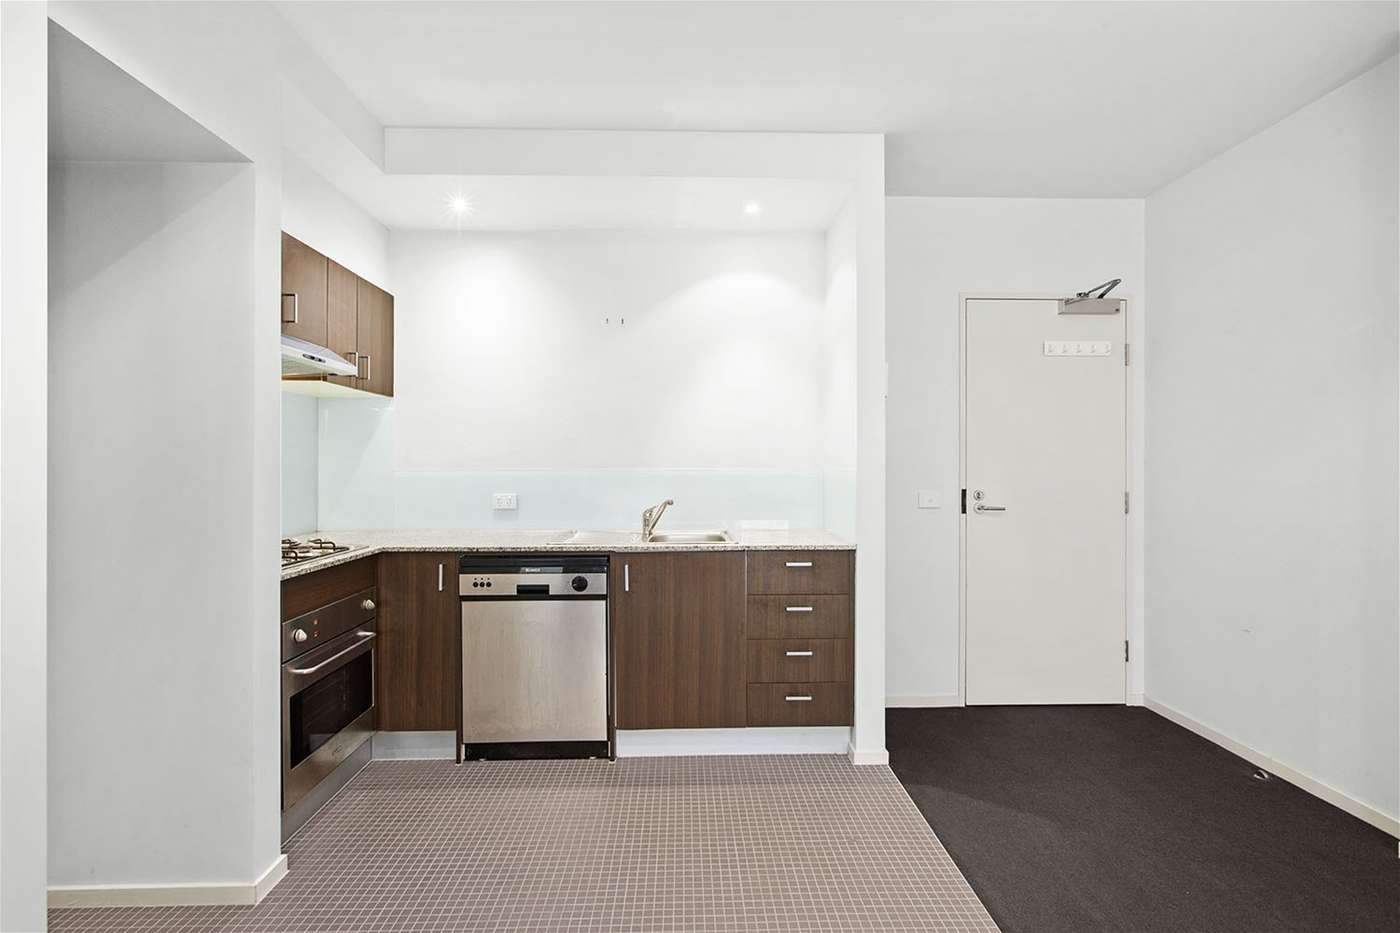 Main view of Homely apartment listing, 32/174 Esplanade East, Port Melbourne, VIC 3207